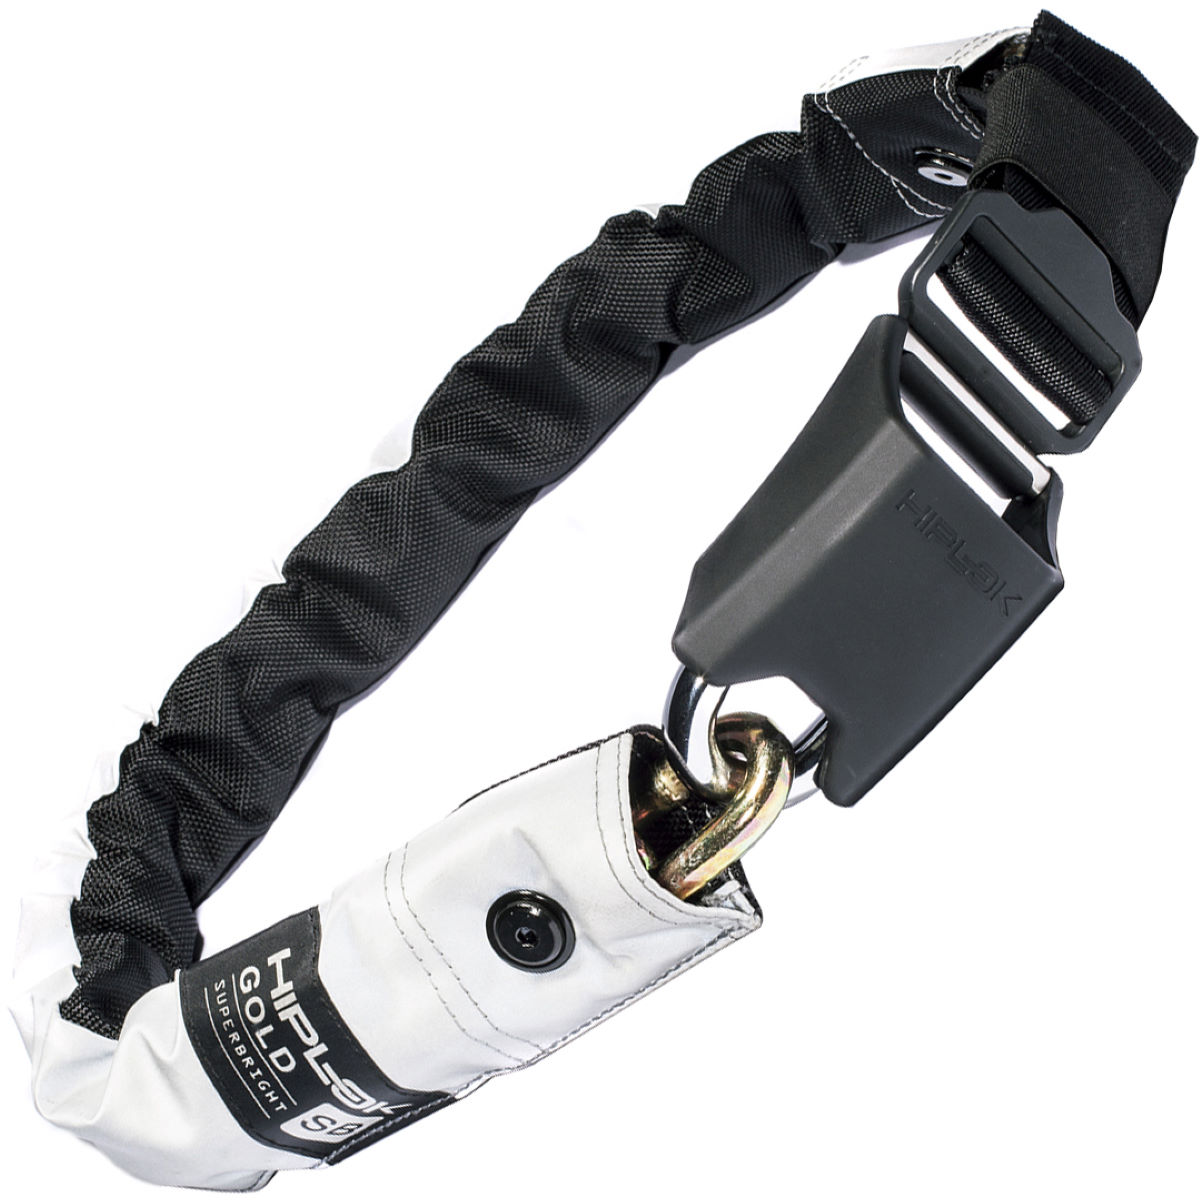 Hiplok Gold Wearable Bicycle Chain Lock - Superbright Reflecti